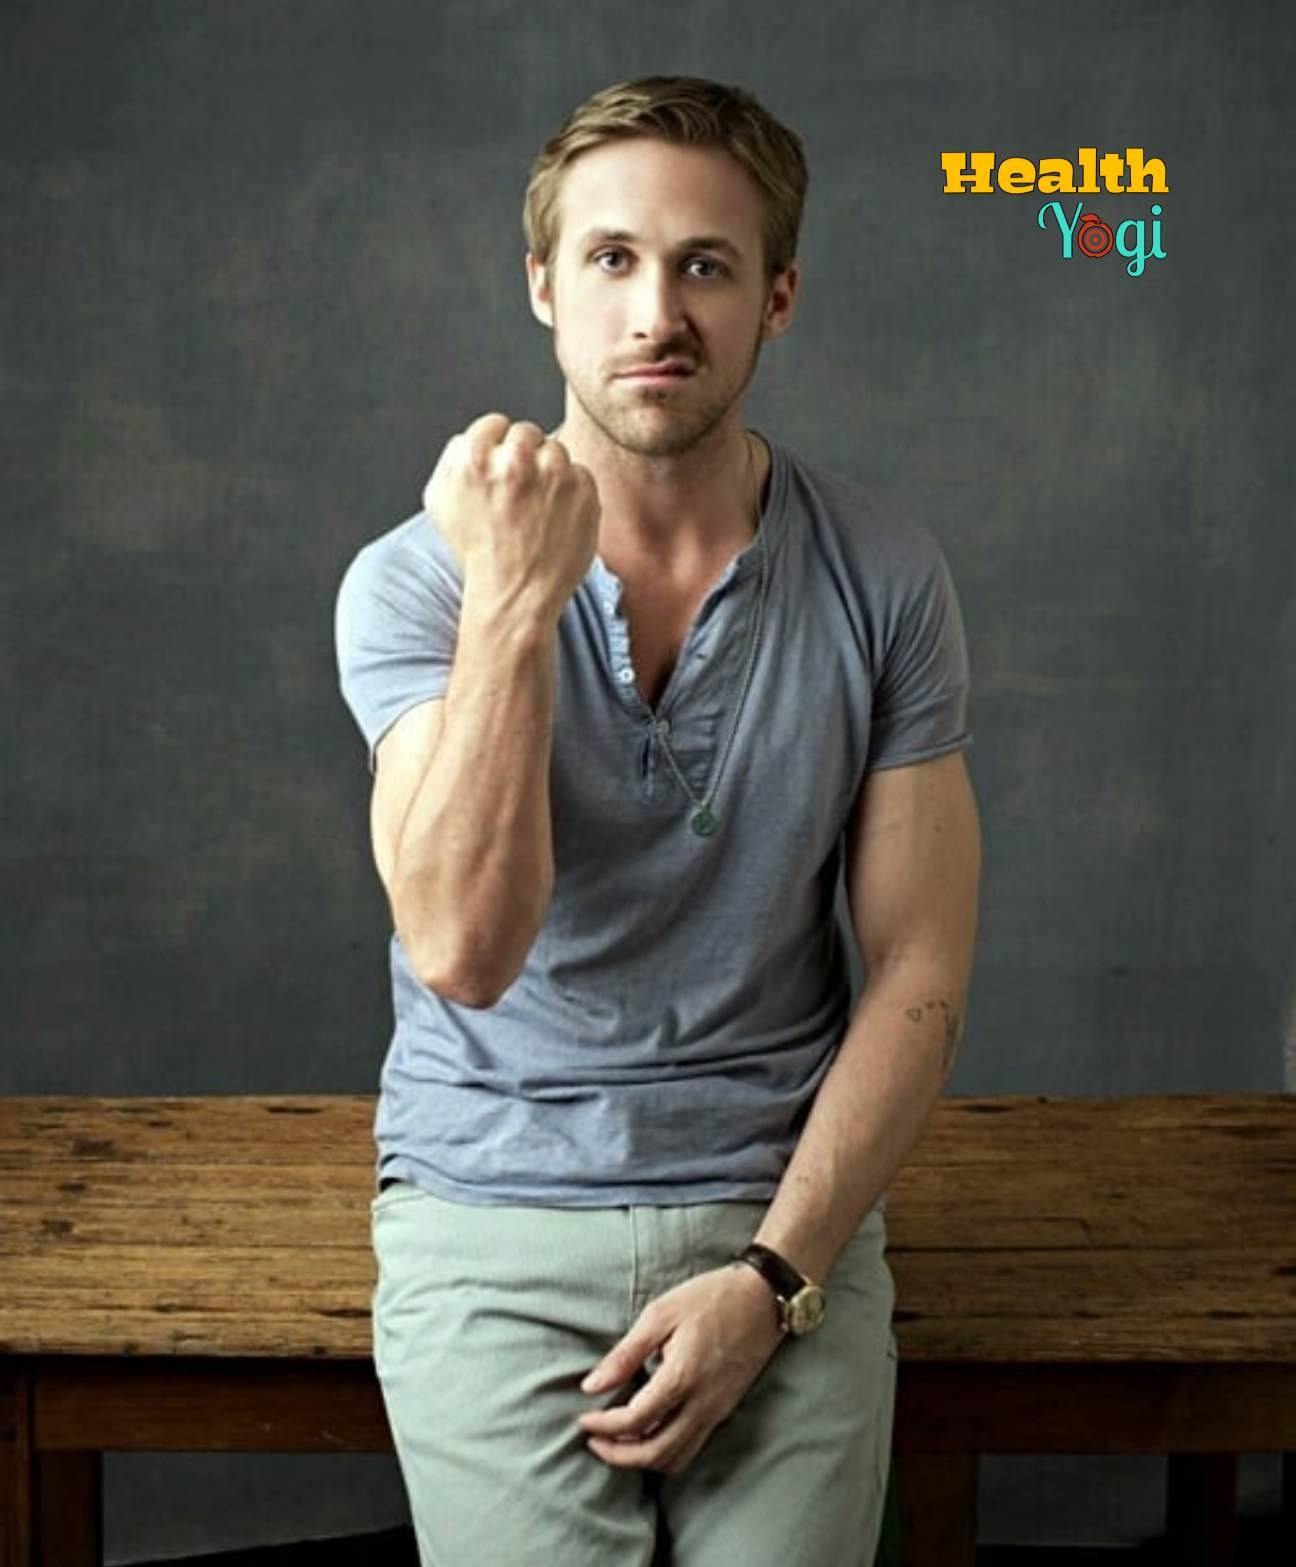 Ryan Gosling Workout Routine and Diet Plan